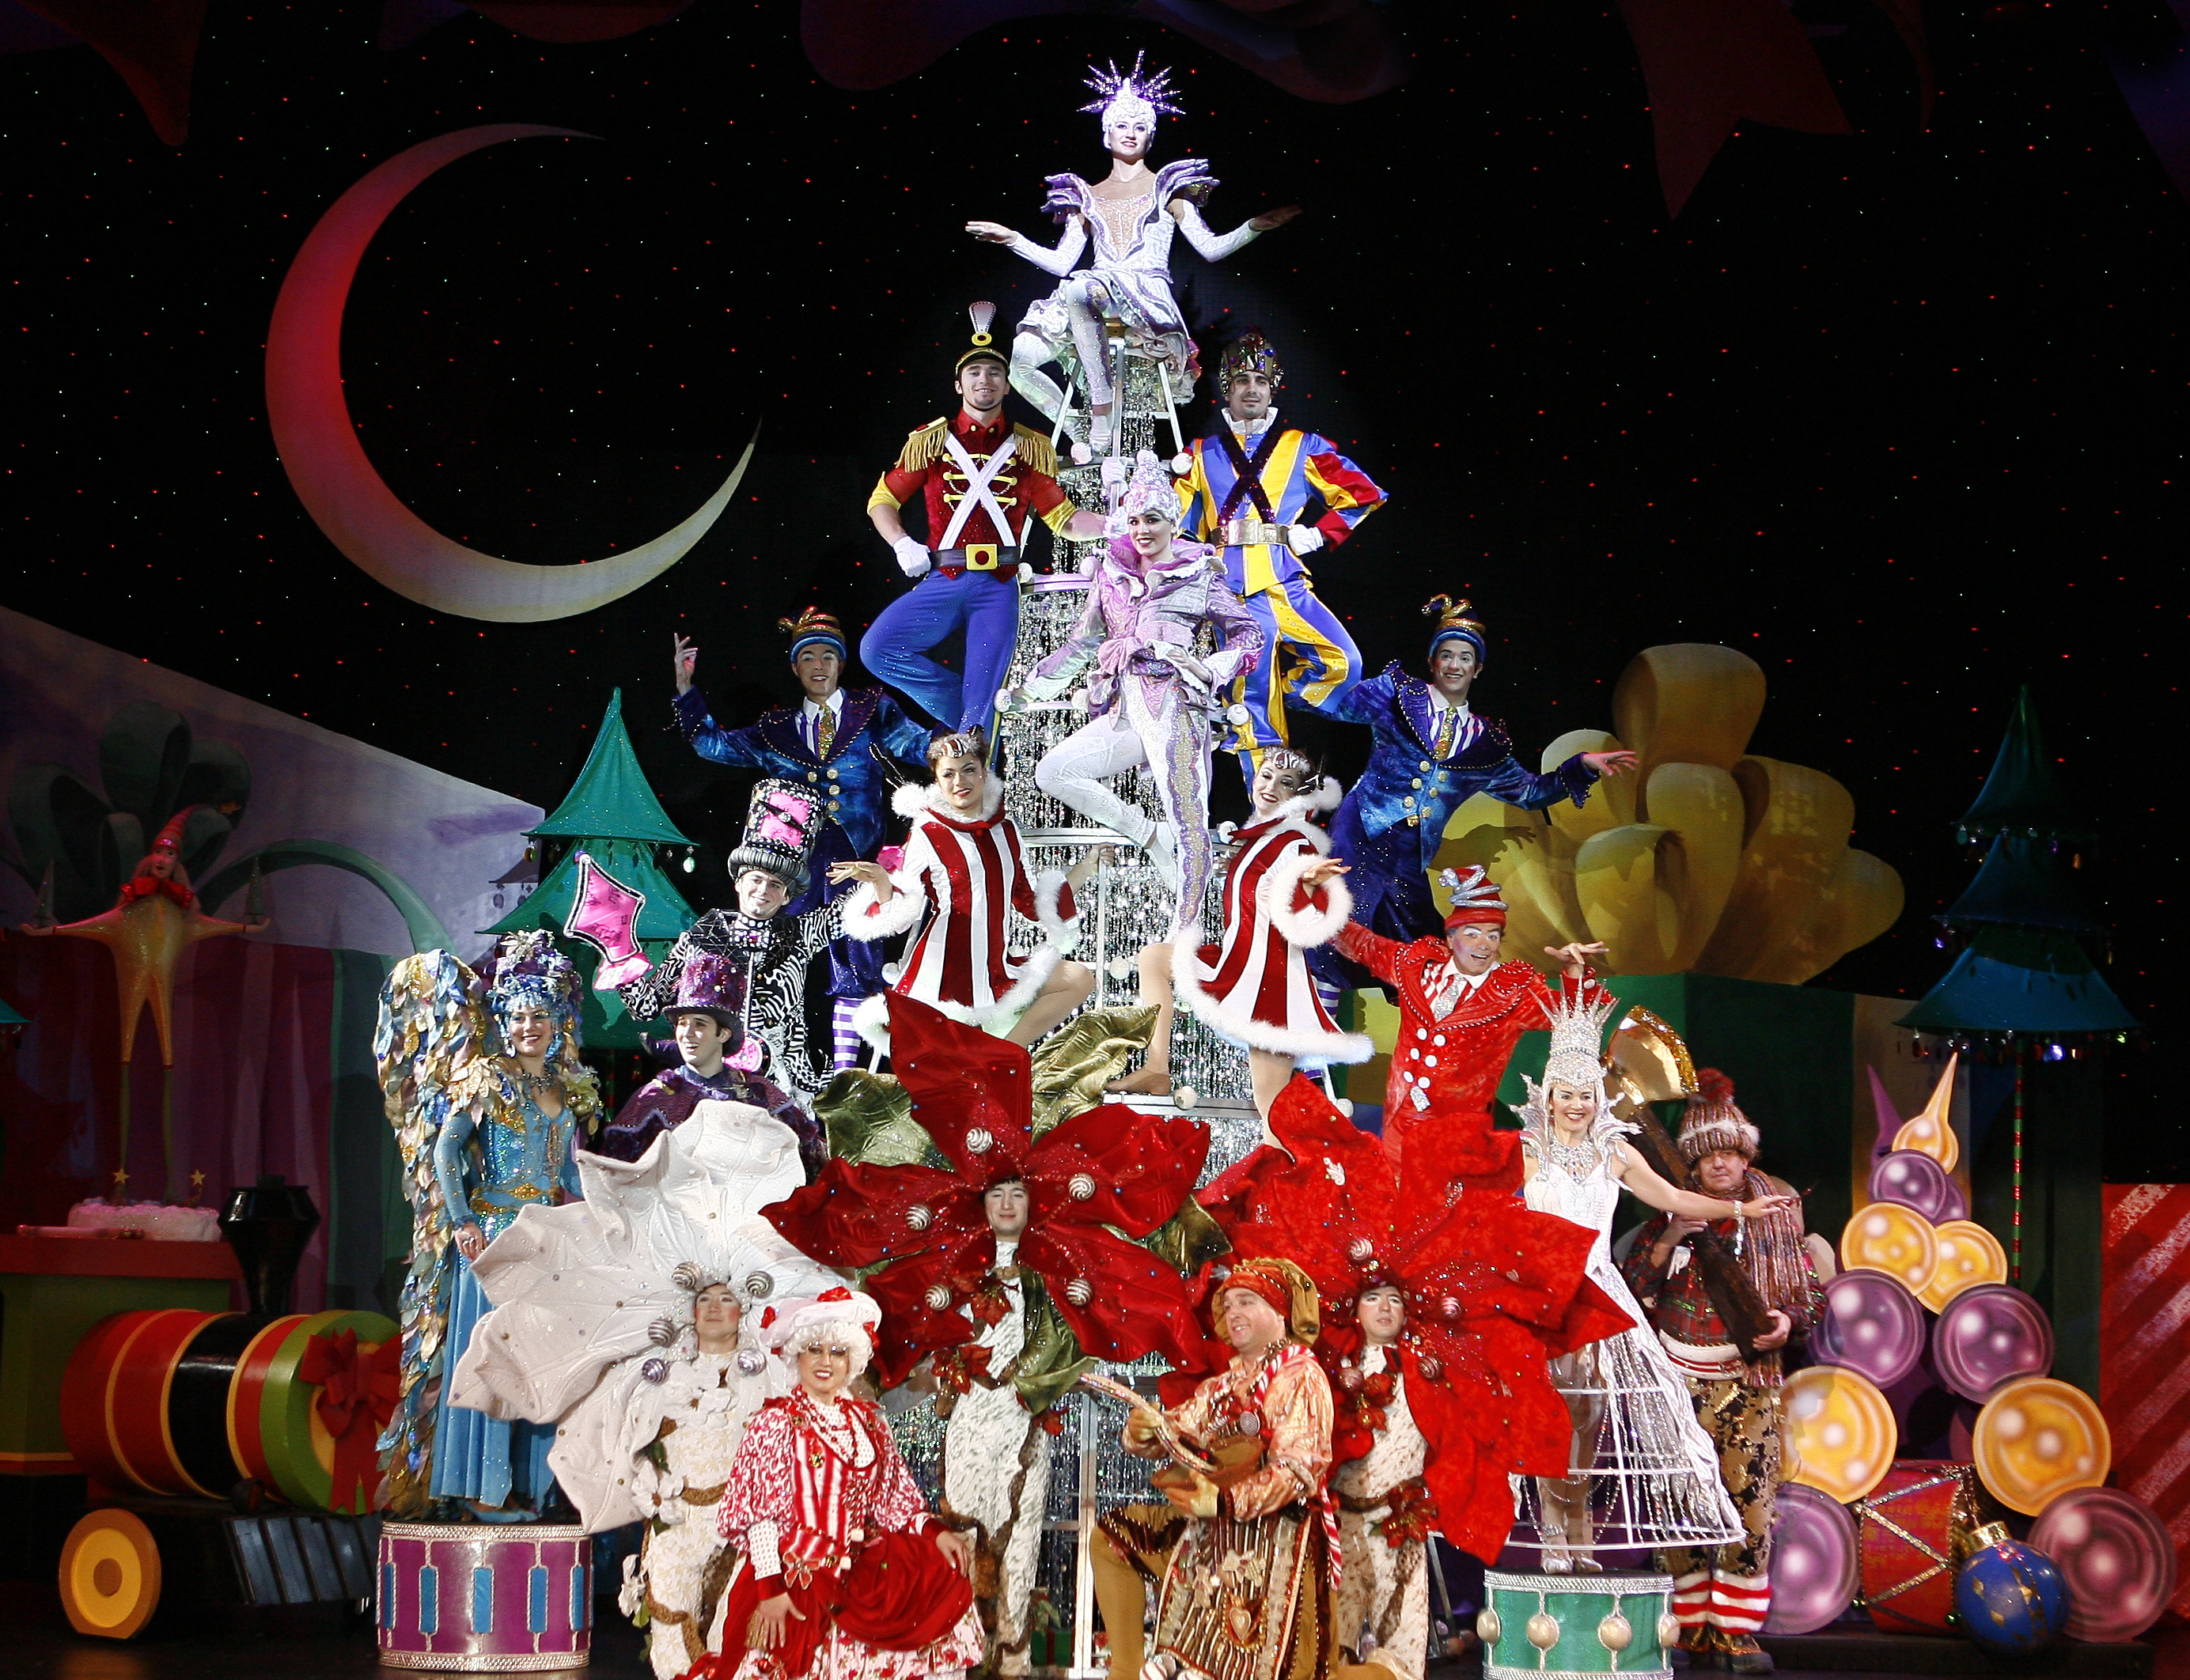 Ornaments on a Tree. Photo Credit: Cirque Dreams Holidaze, Courtesy of Cirque Productions.